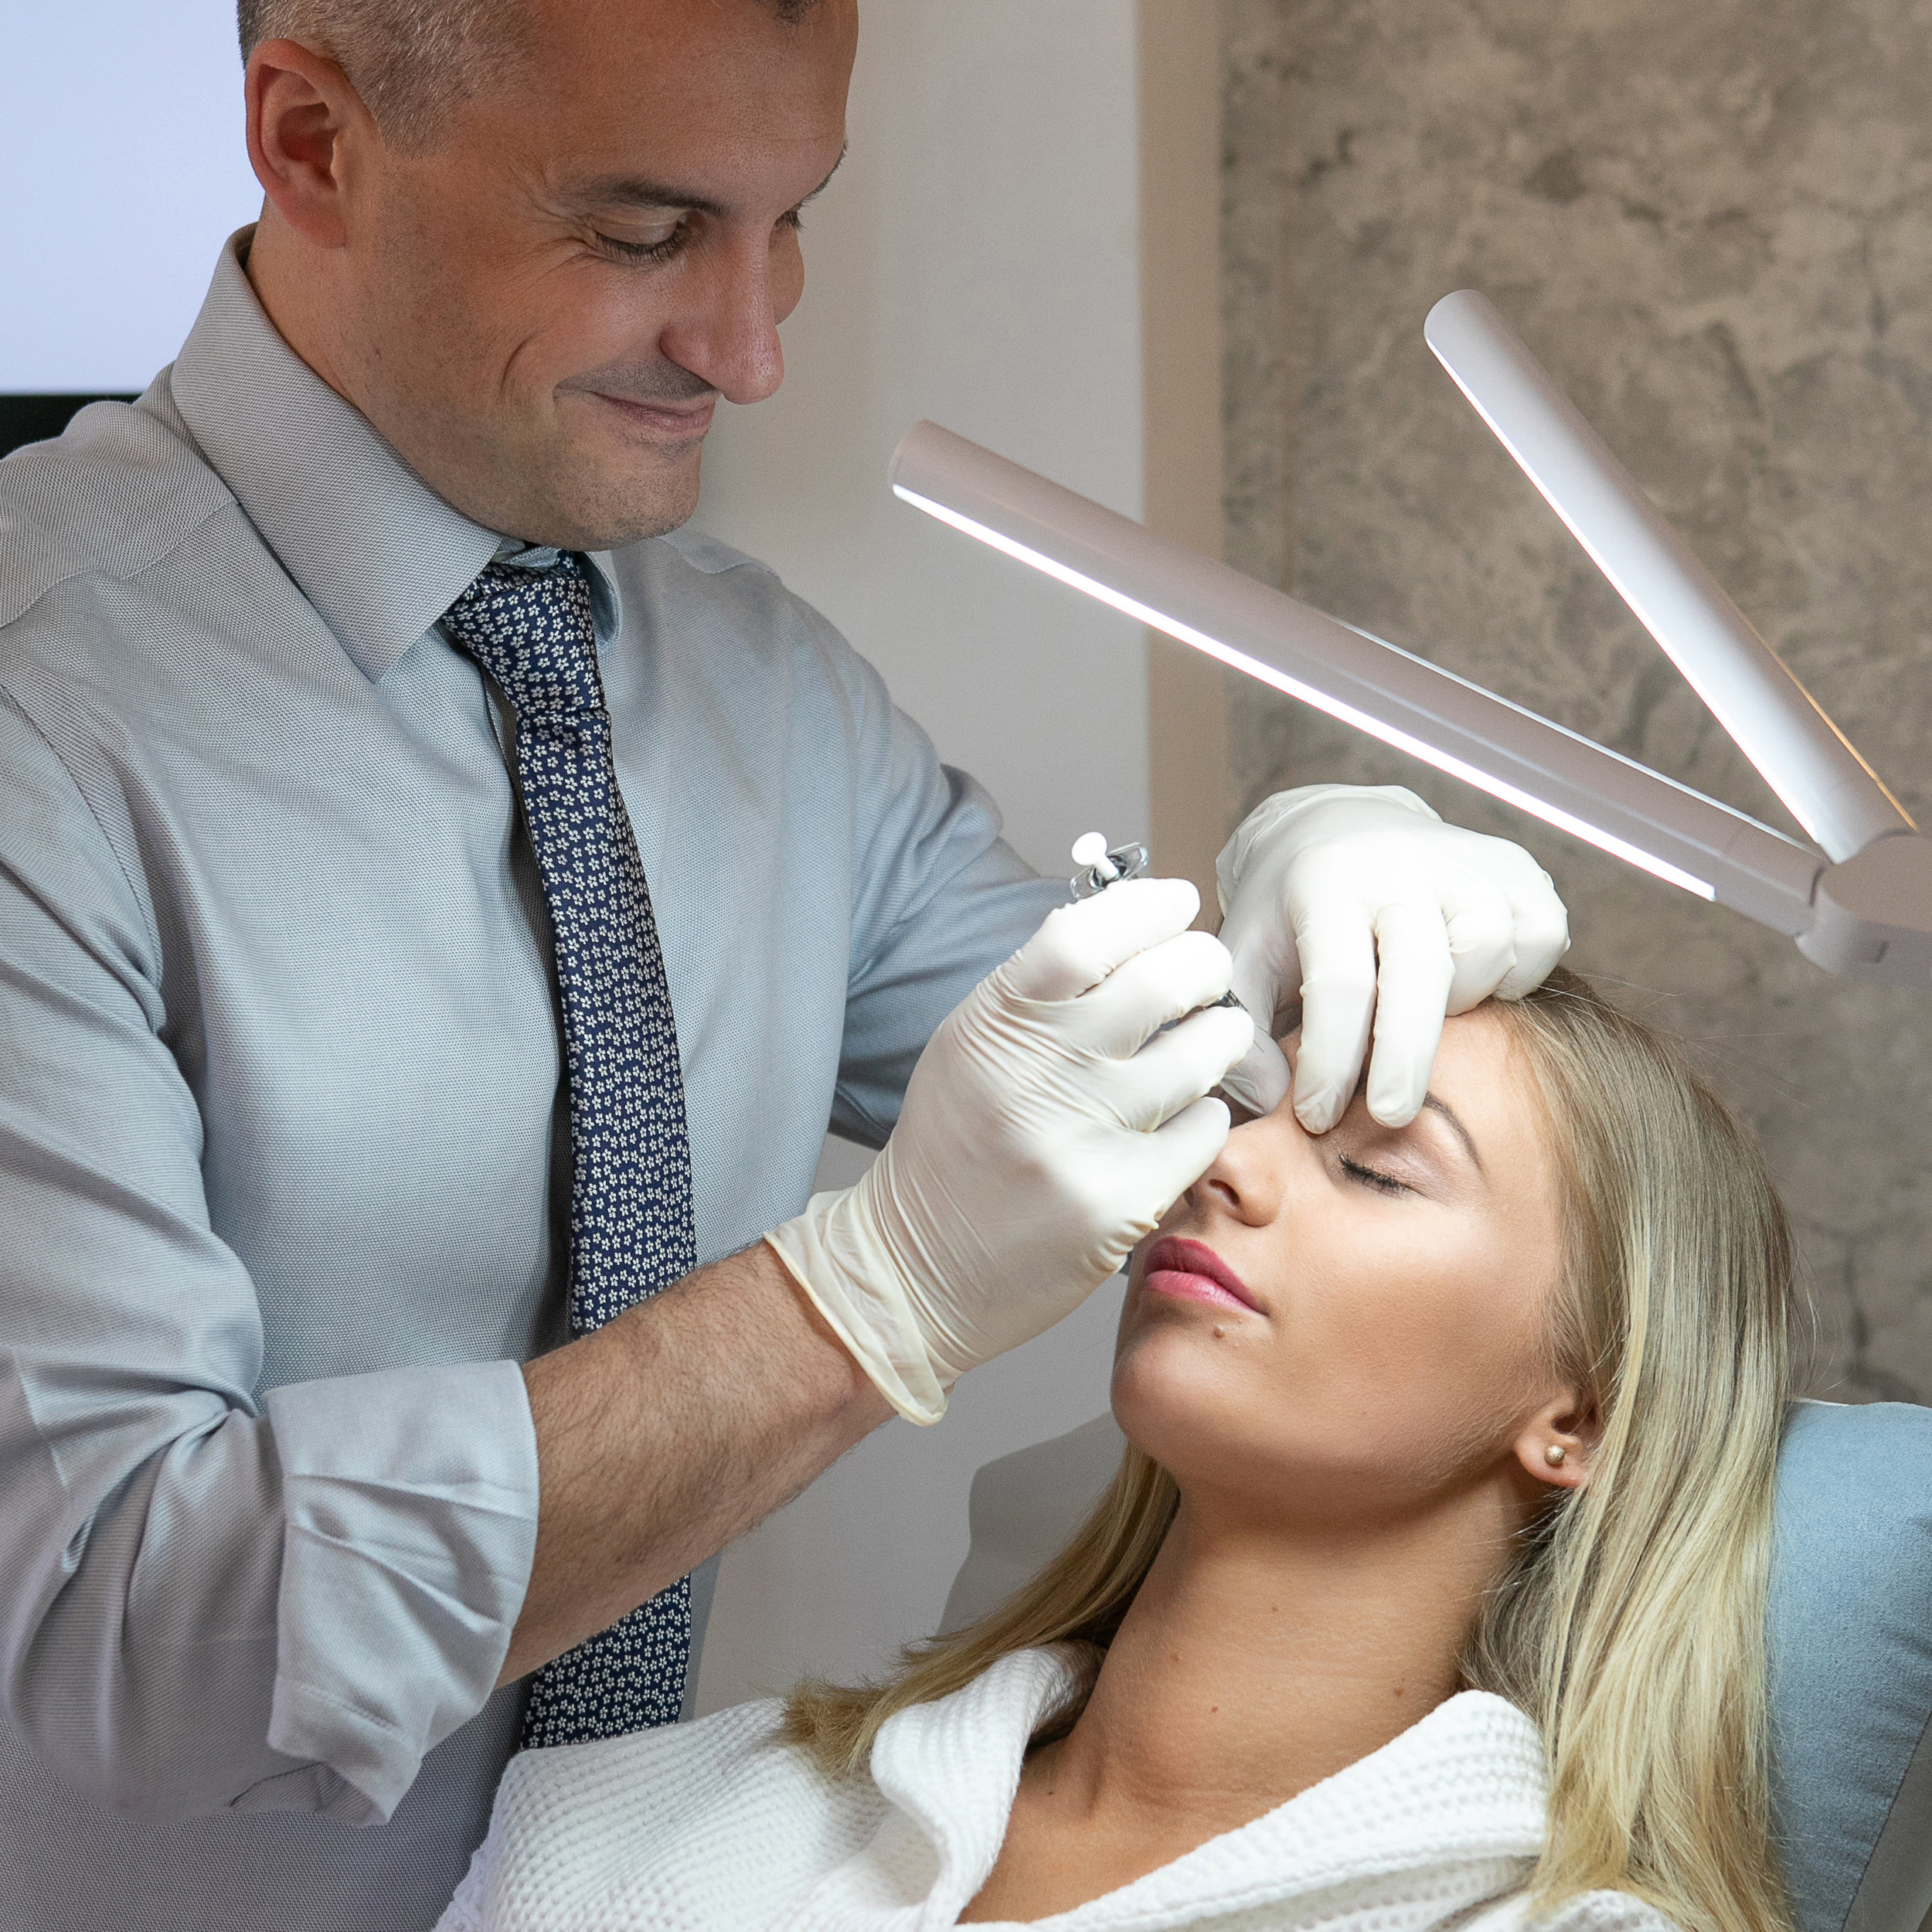 Dermal fillers - Diminishes wrinkles and gently accentuates areas such as the lips, cheeks, jawline, chin and temples. Provides natural lifting and rejuvenation with long-lasting results and no down-time.